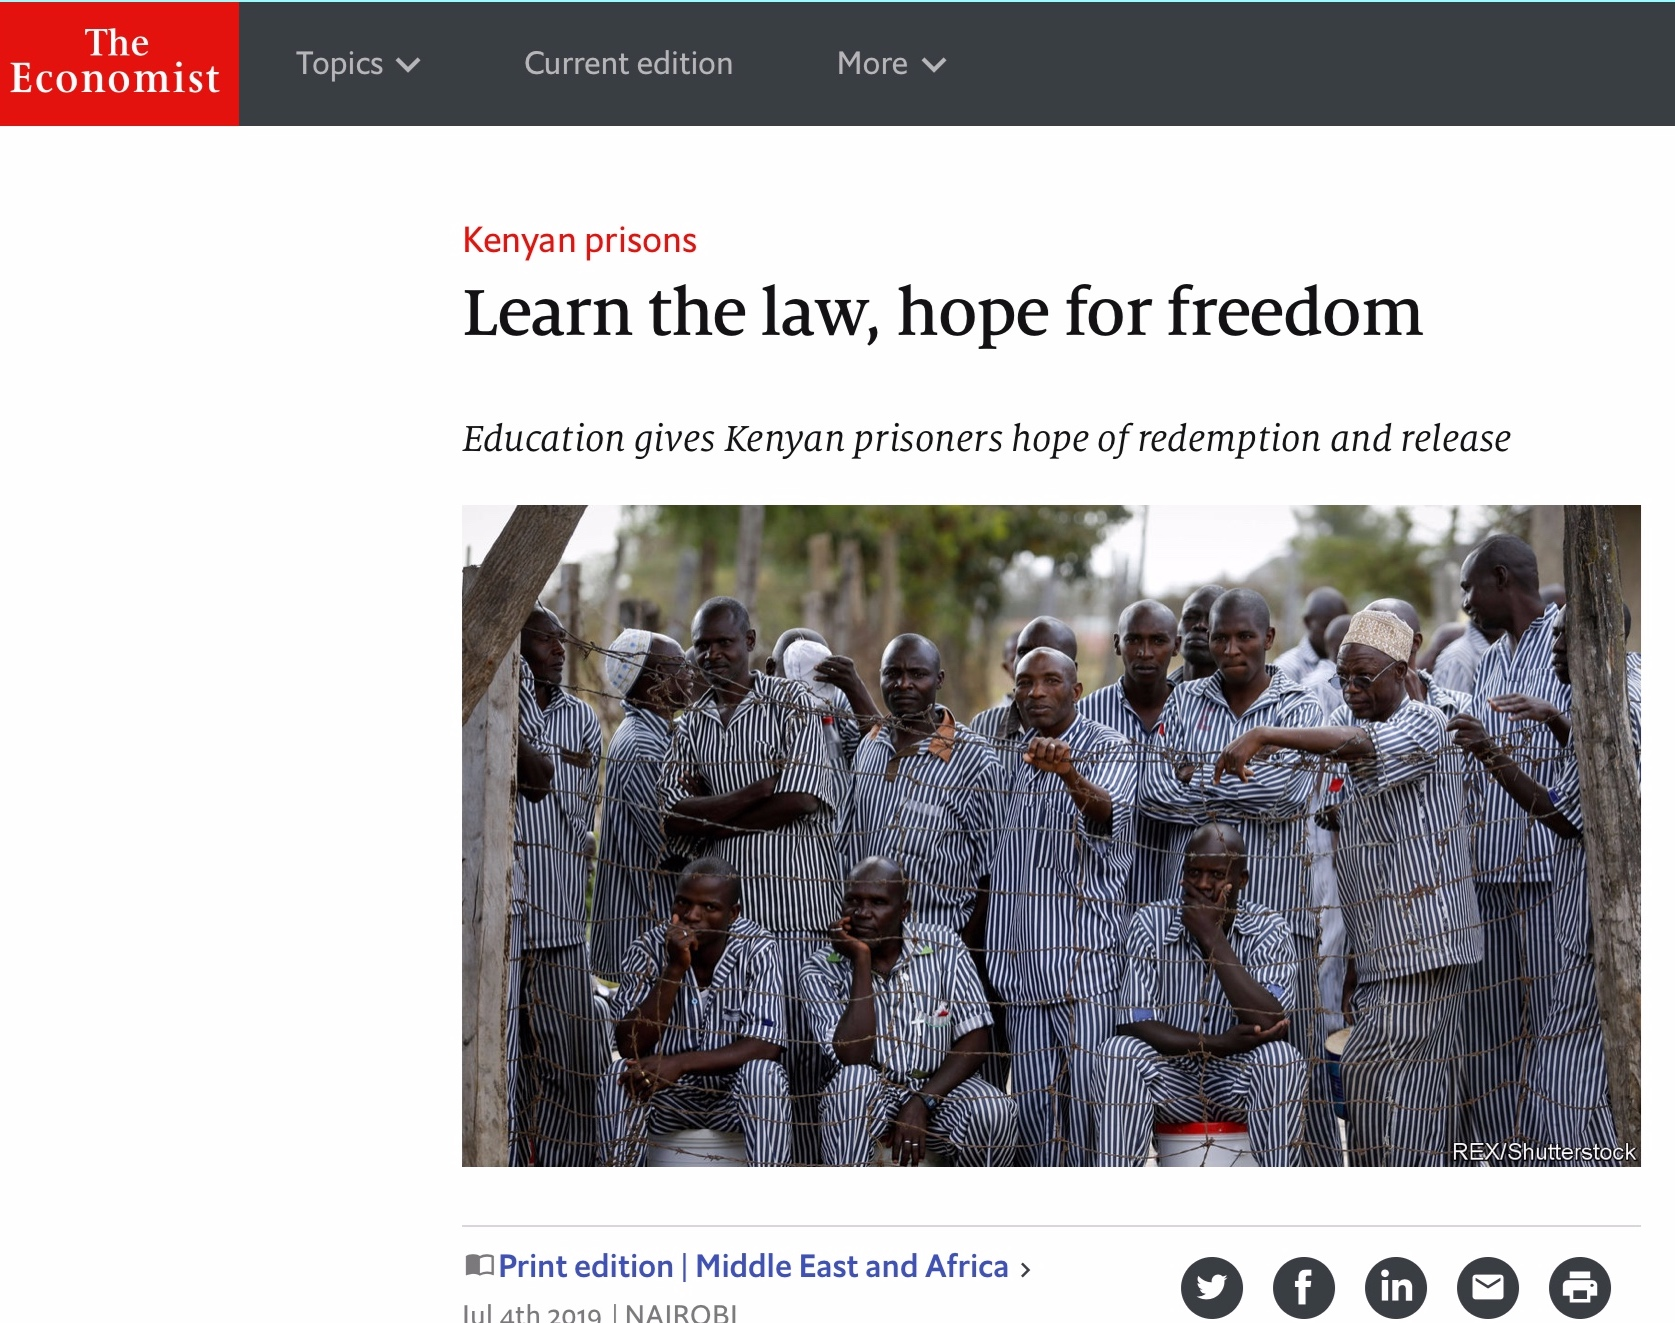 Article – The Economist - Learn the law, hope for freedomEducation gives Kenyan prisoners hope of redemption and release.